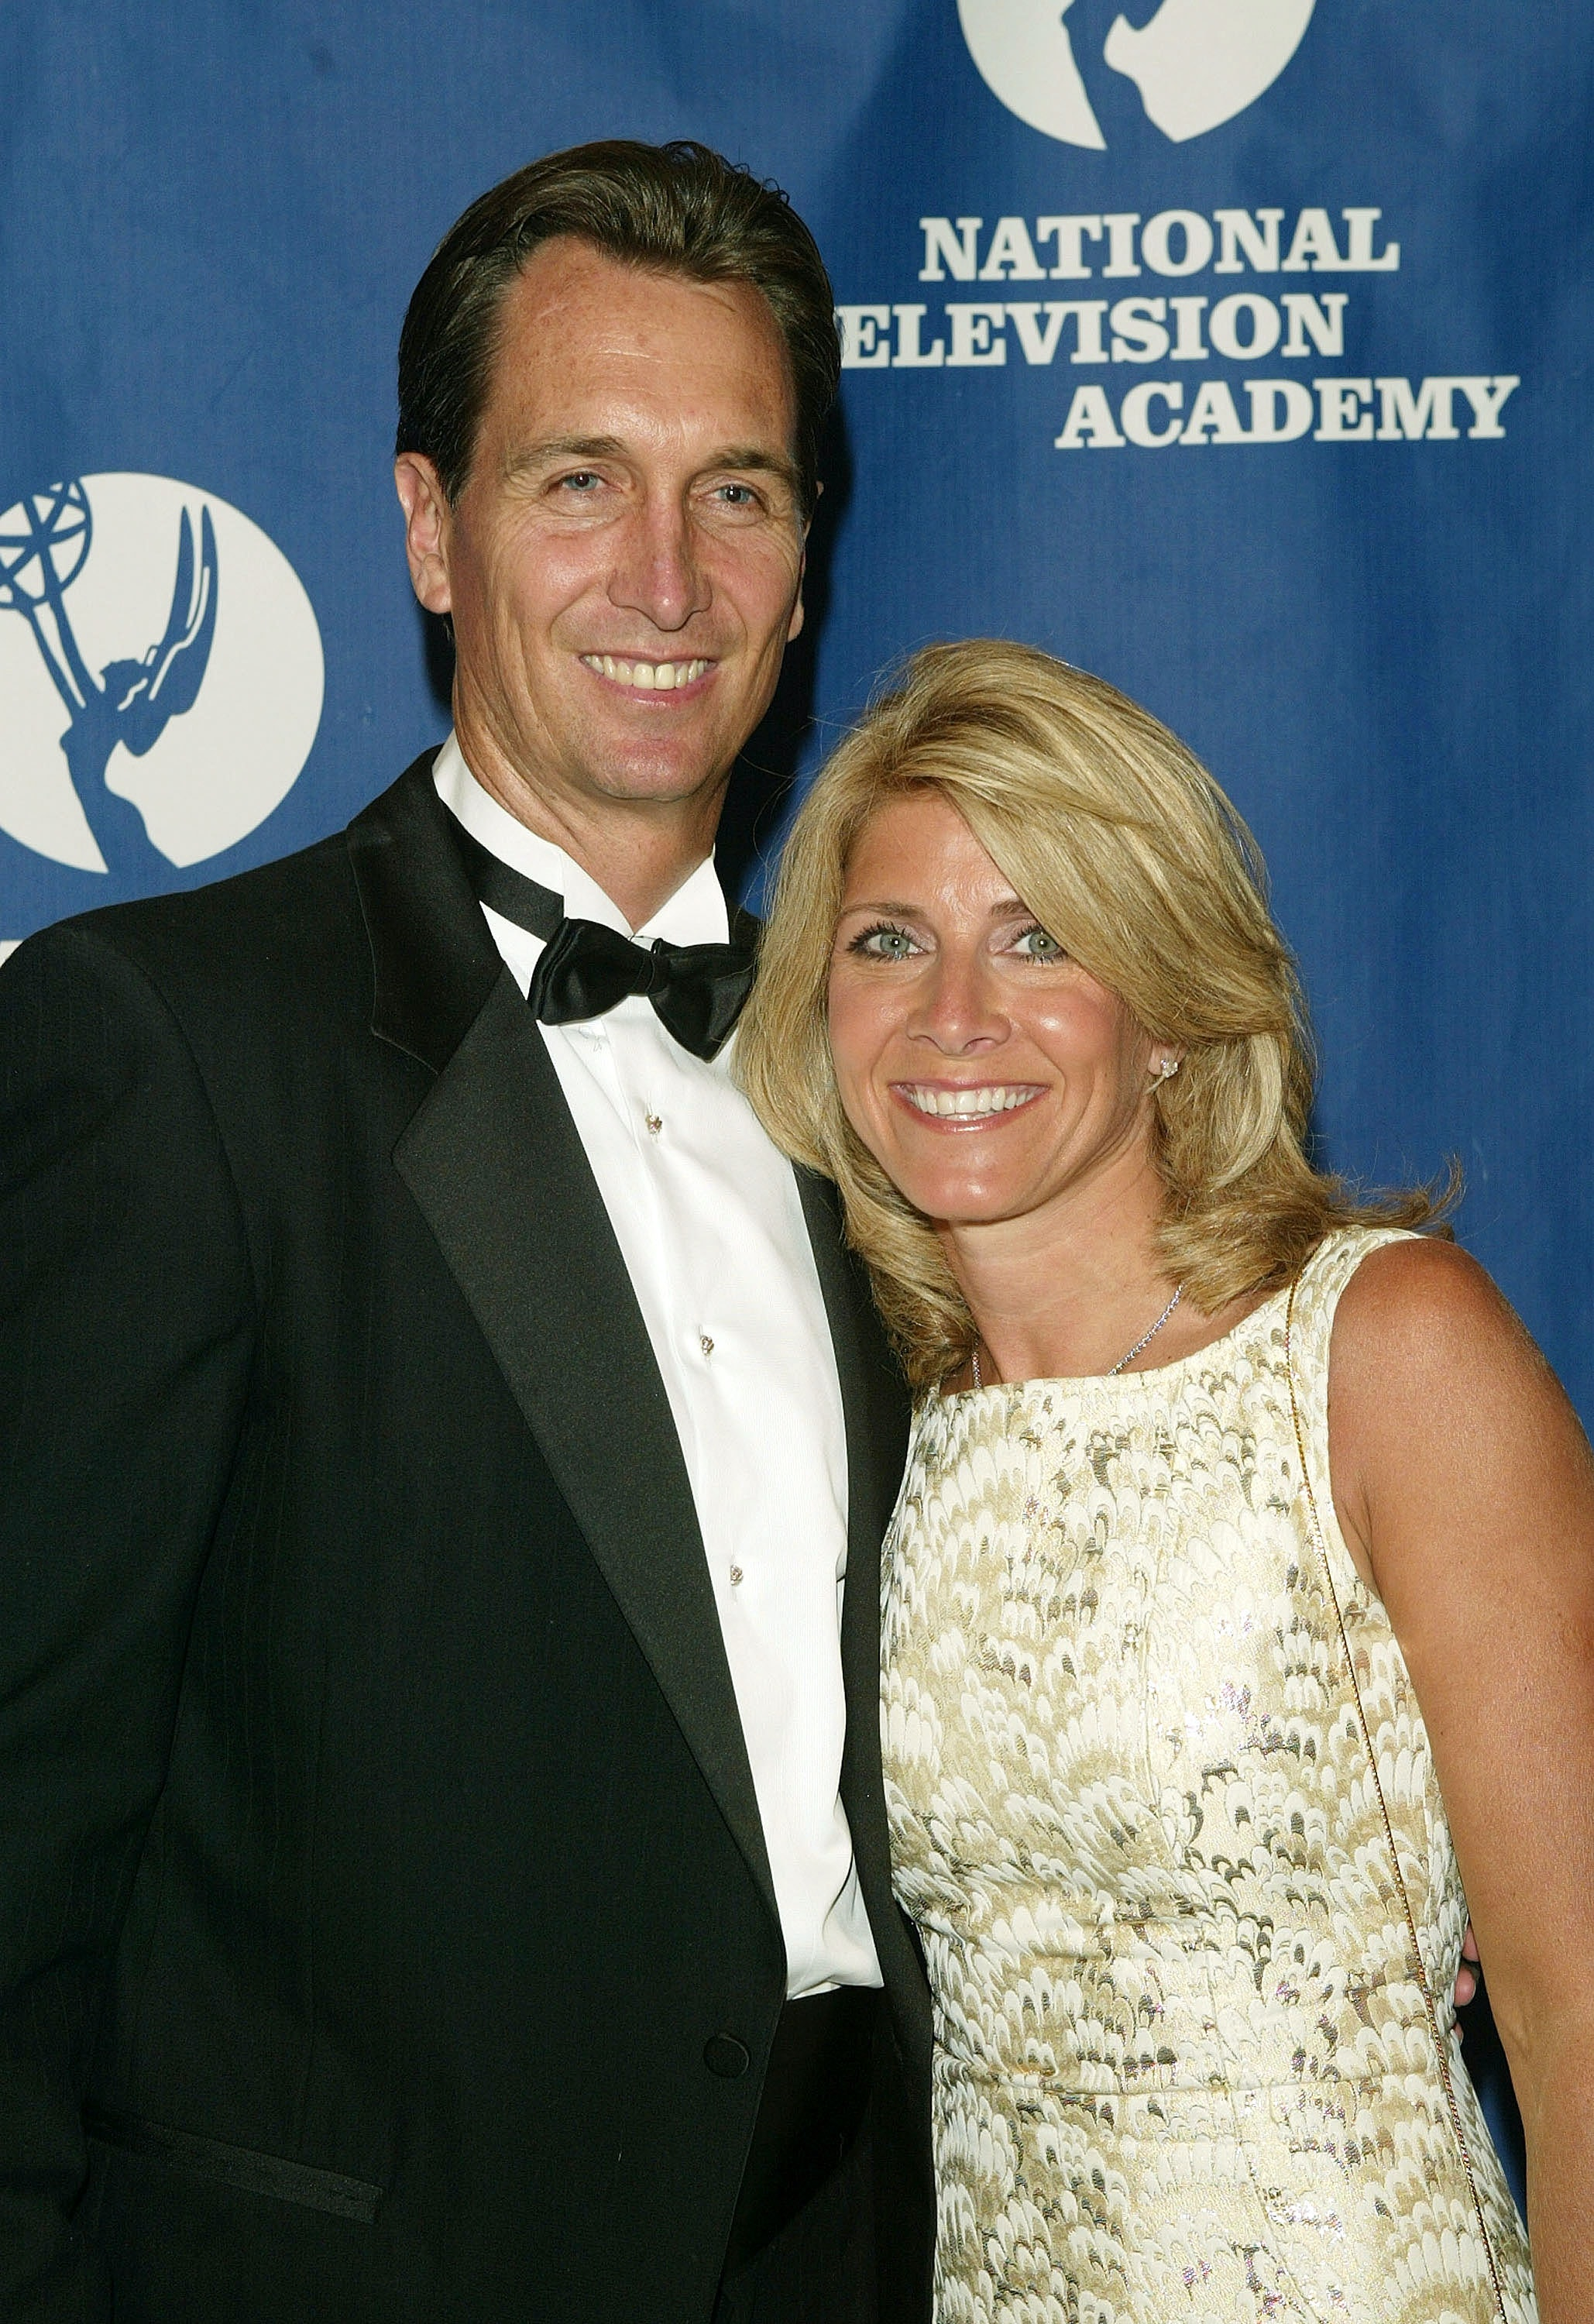 Cris Collinsworth with beautiful, Wife Holly Bankemper